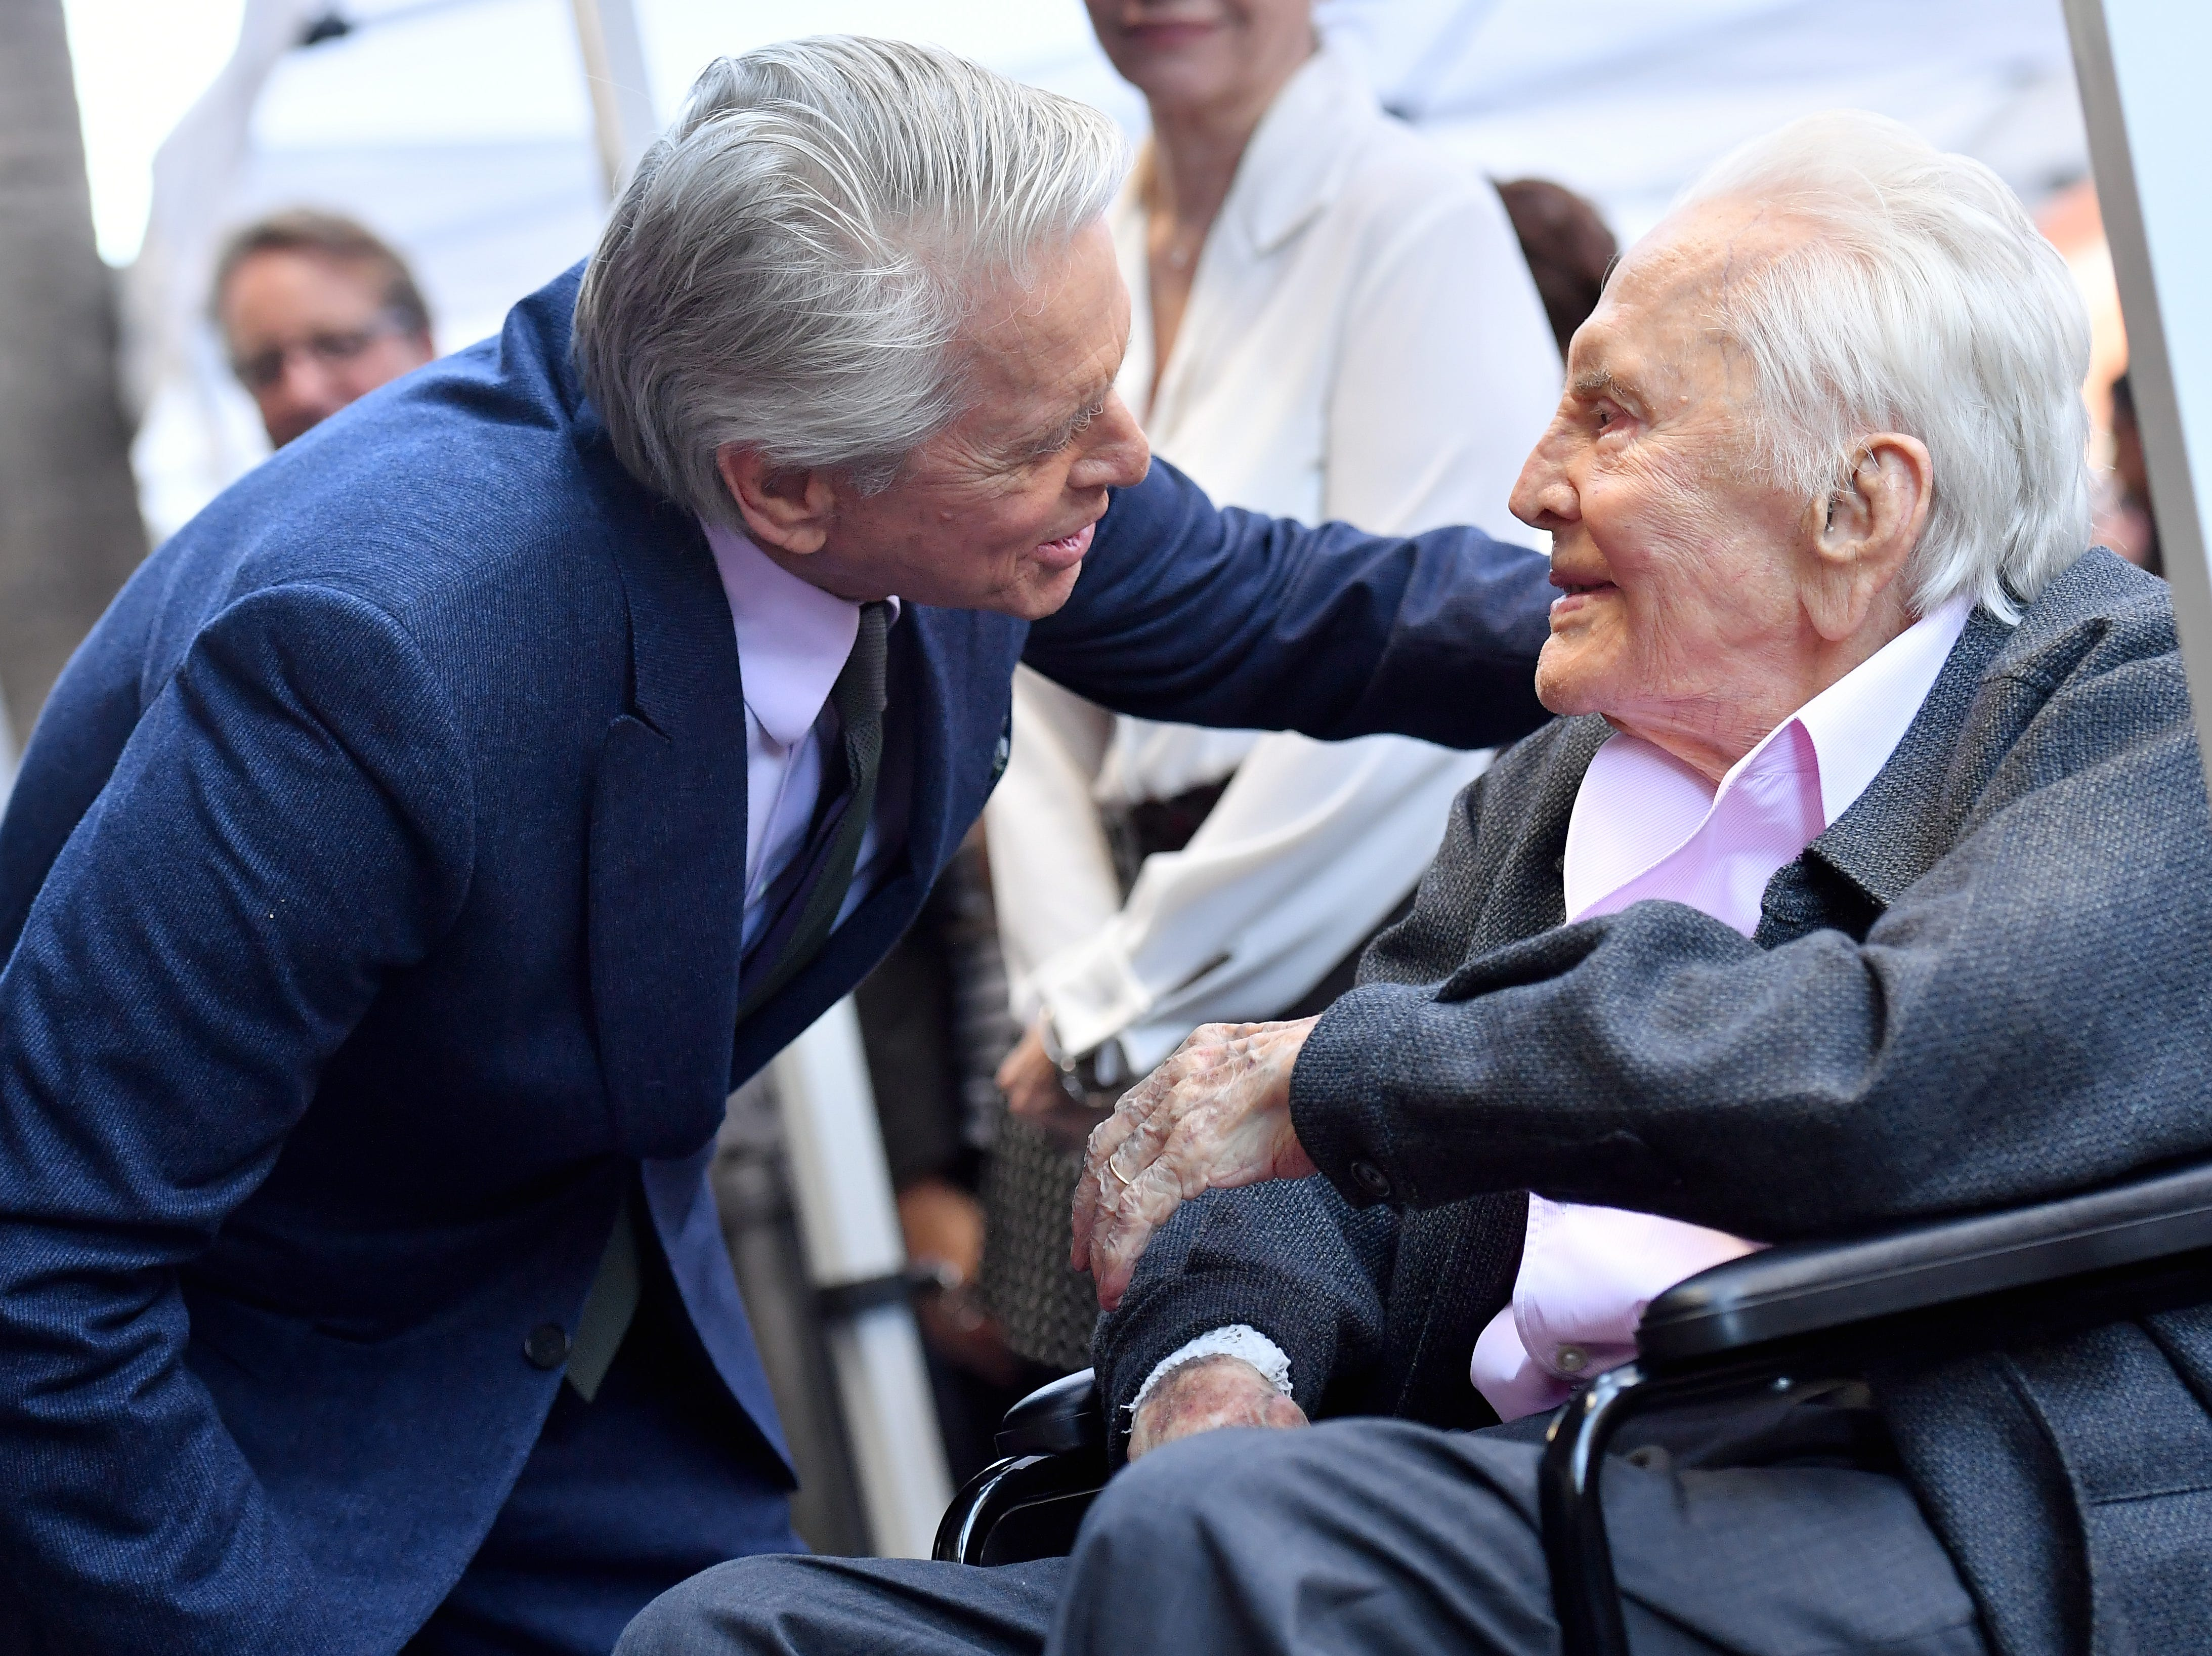 HOLLYWOOD, CA - NOVEMBER 06:  Michael Douglas and Kirk Douglas attend the ceremony honoring Michael Douglas with star on the Hollywood Walk of Fame on November 06, 2018 in Hollywood, California.  (Photo by Axelle/Bauer-Griffin/FilmMagic) ORG XMIT: 775248764 ORIG FILE ID: 1058349472